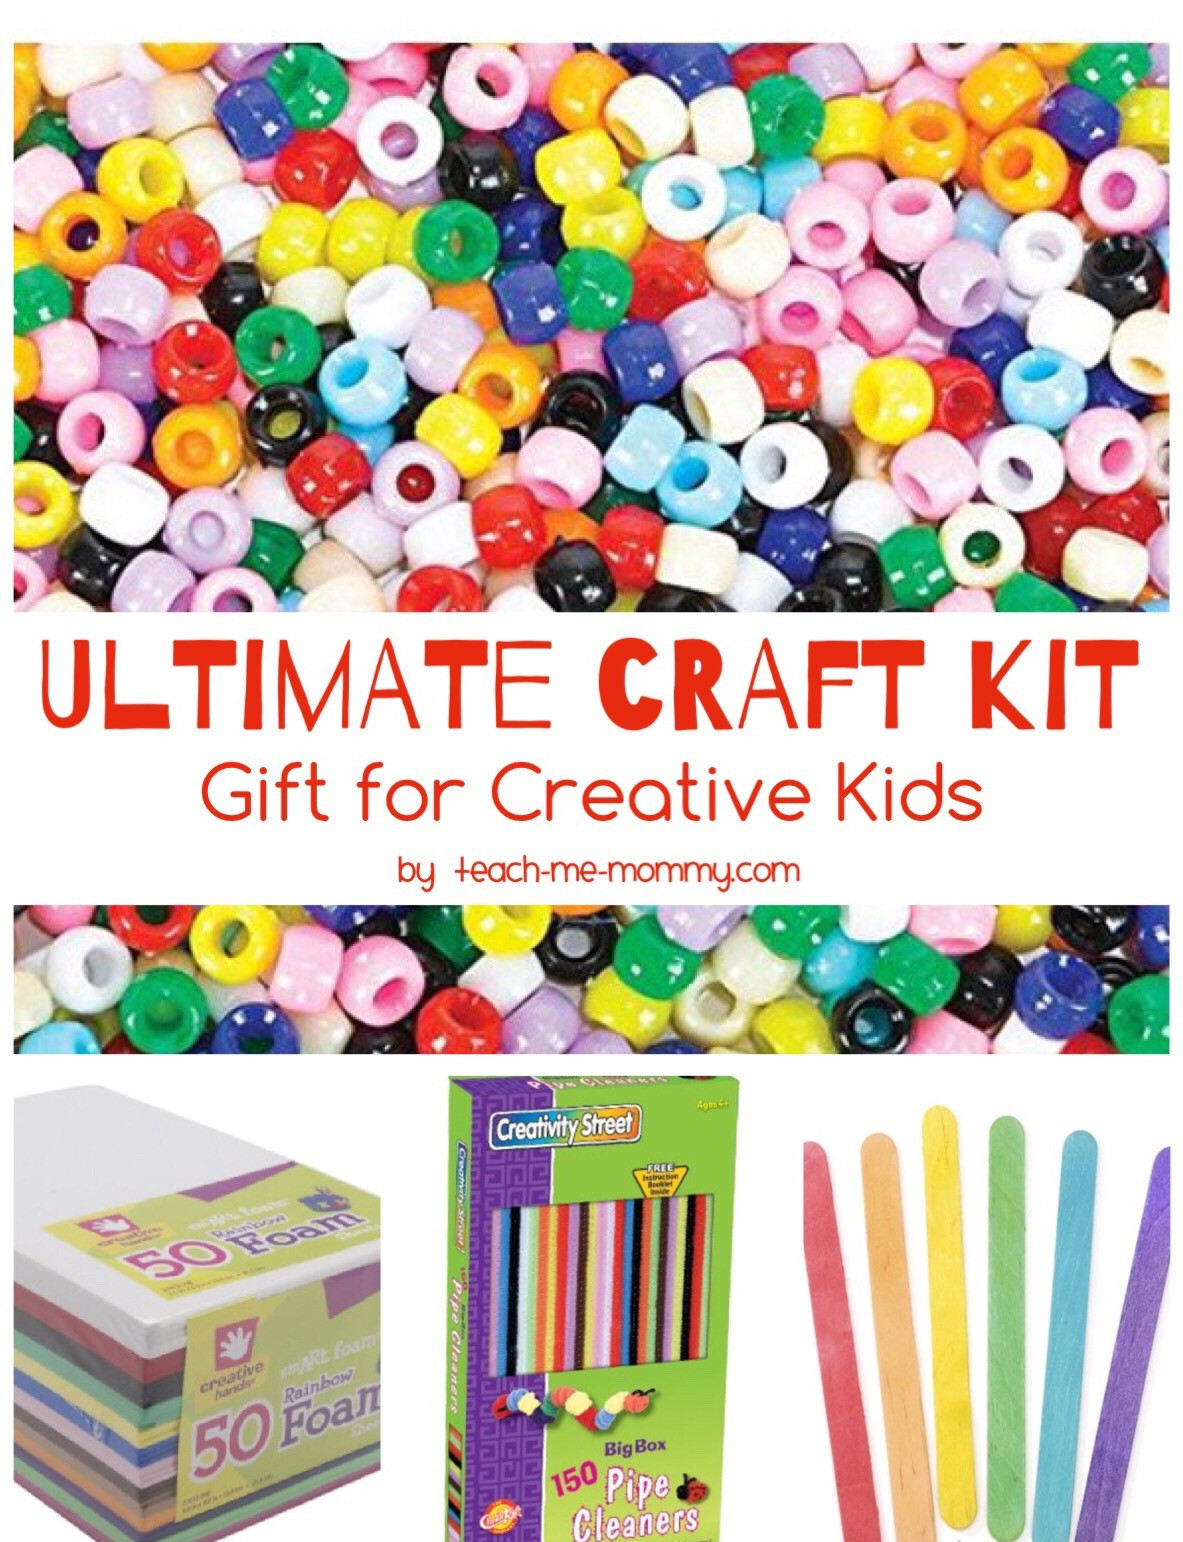 Crafts Kits For Kids  The Ultimate Craft Kit for Creative Kids Teach Me Mommy